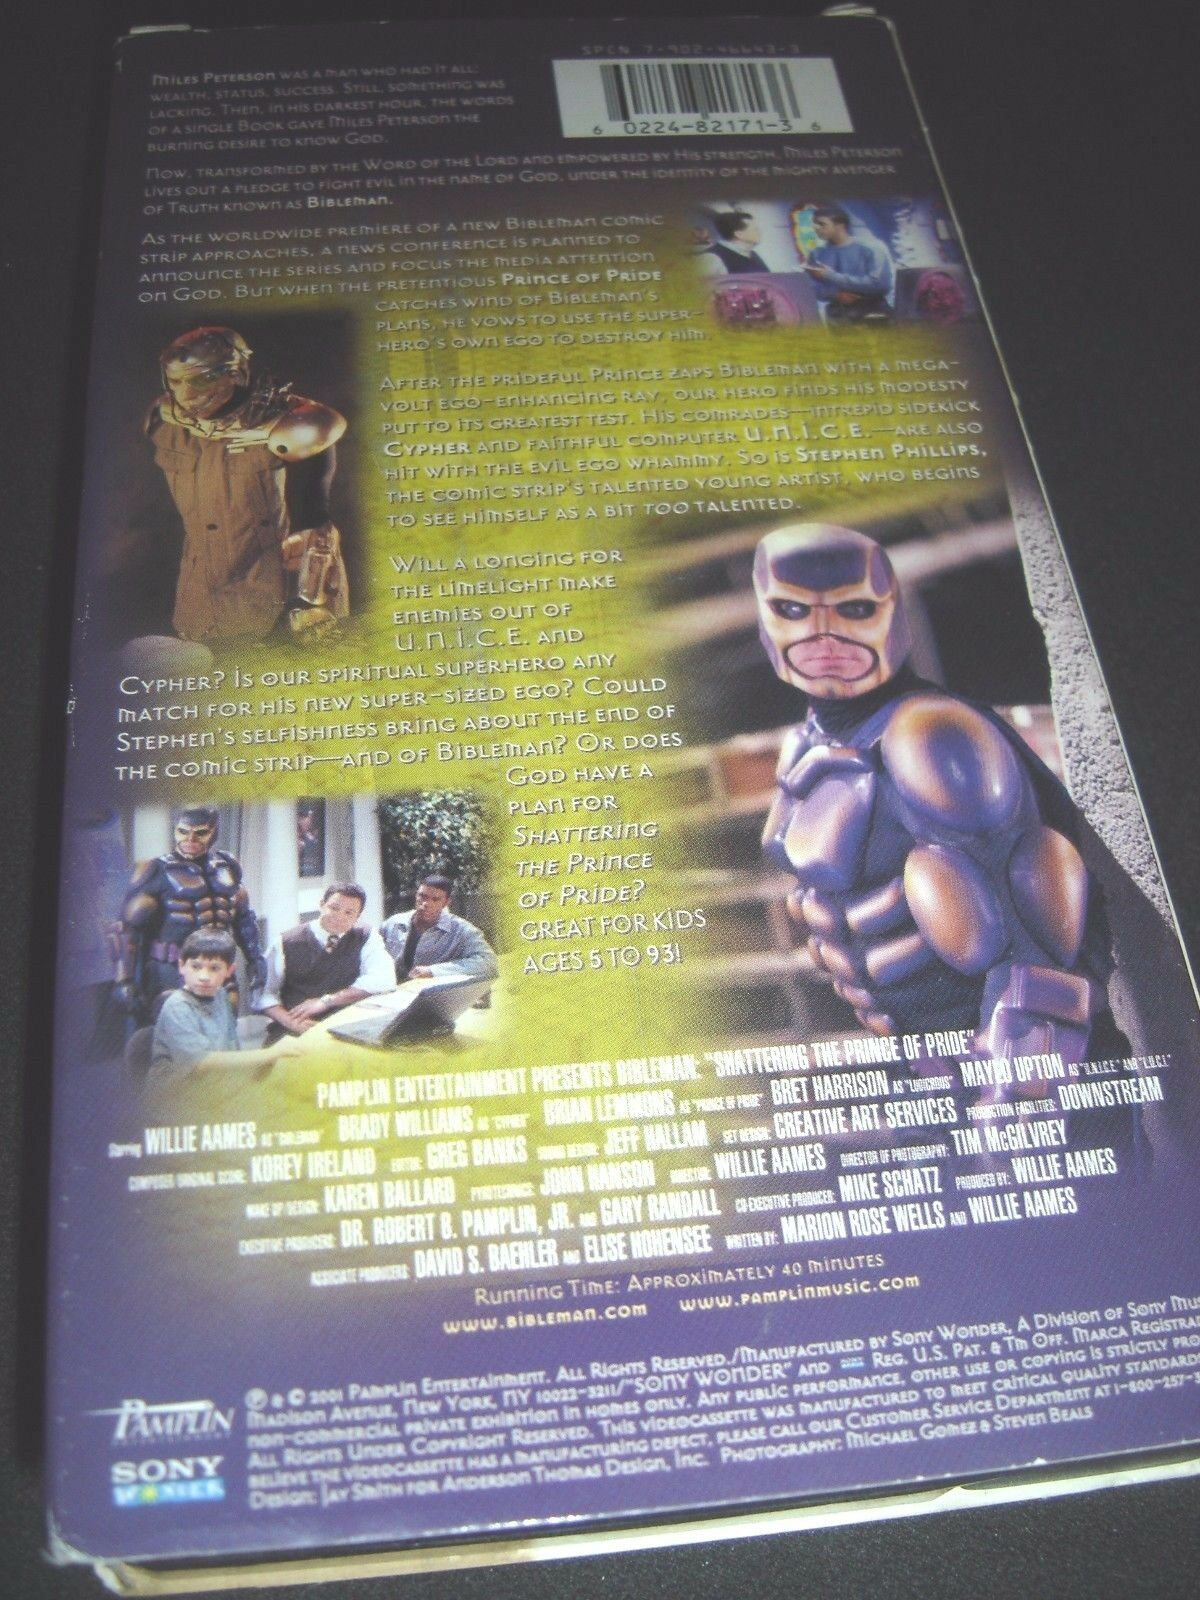 Bibleman Adventure, The: Shattering the Prince of Pride (VHS, 2000)